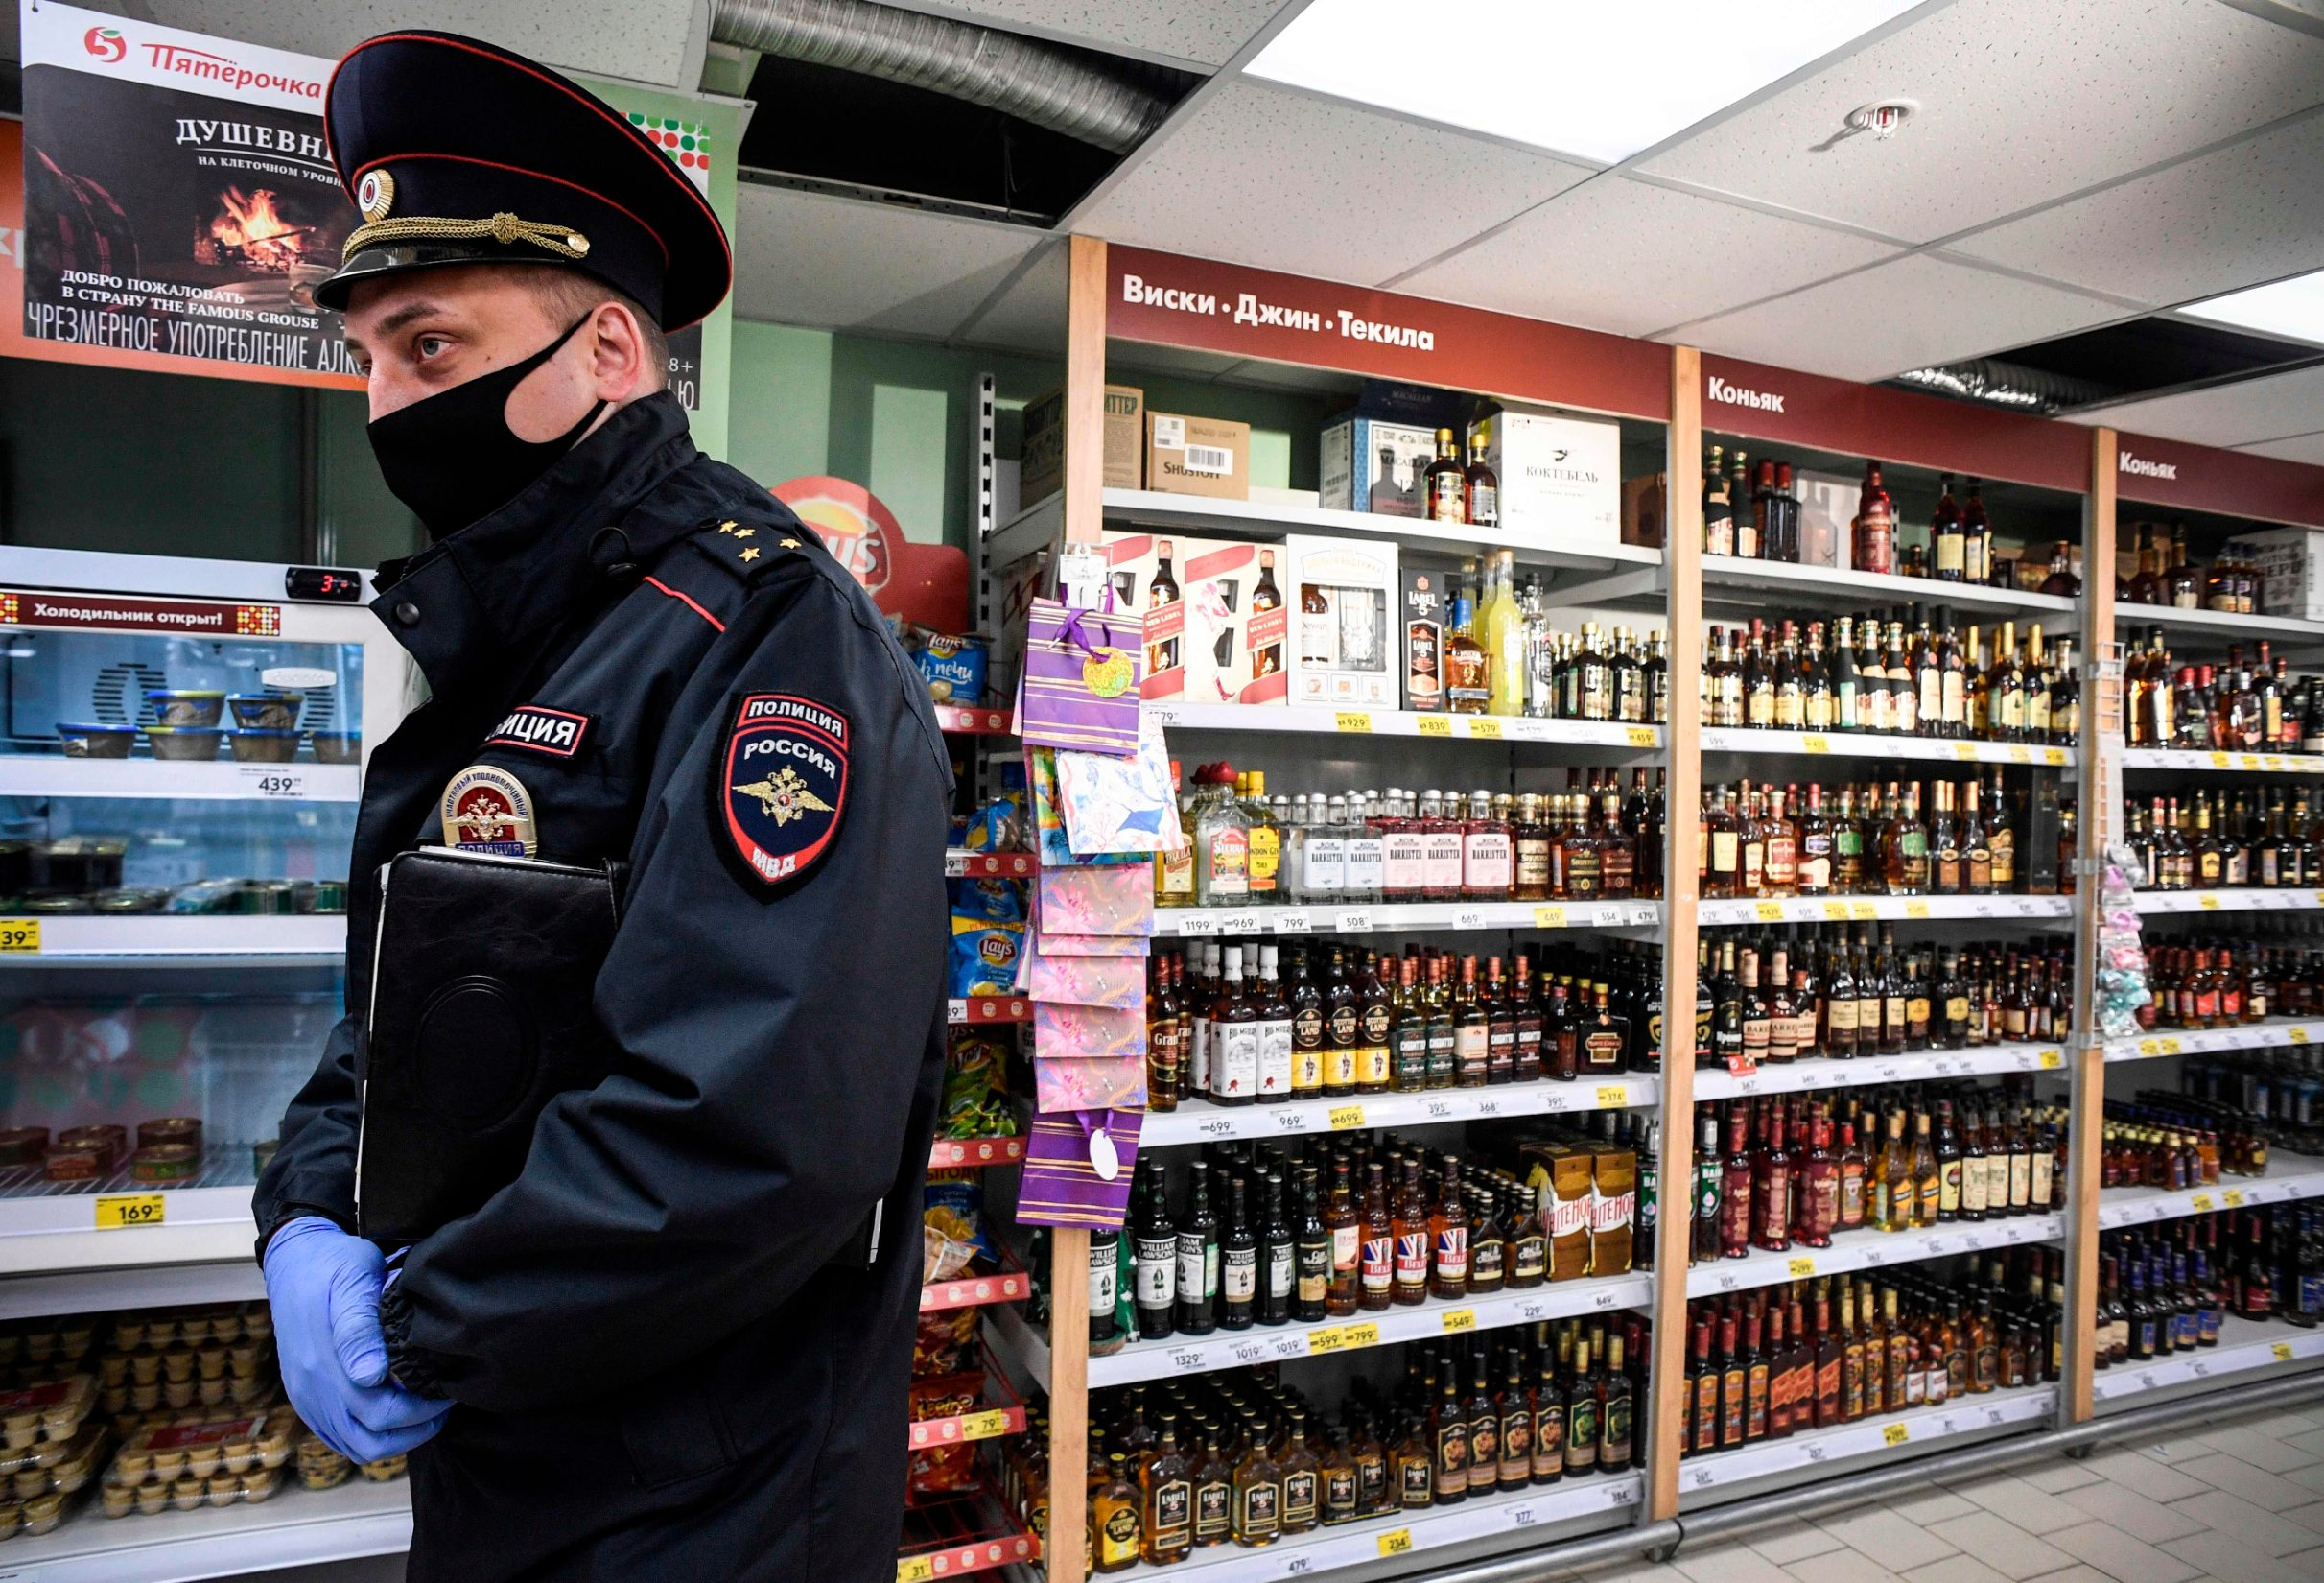 A Russian police officer wearing a protective mask patrol inside a supermarket in Moscow on May 13, 2020, amid the spread of the COVID-19 coronavirus. - To avoid the escalation of the number of infections, the city authorities have made it mandatory to wear gloves and a masks on public transport, shops and other pubic places, on pain of a fine of 5,000 rubles (about 63 euros). (Photo by Alexander NEMENOV / AFP)